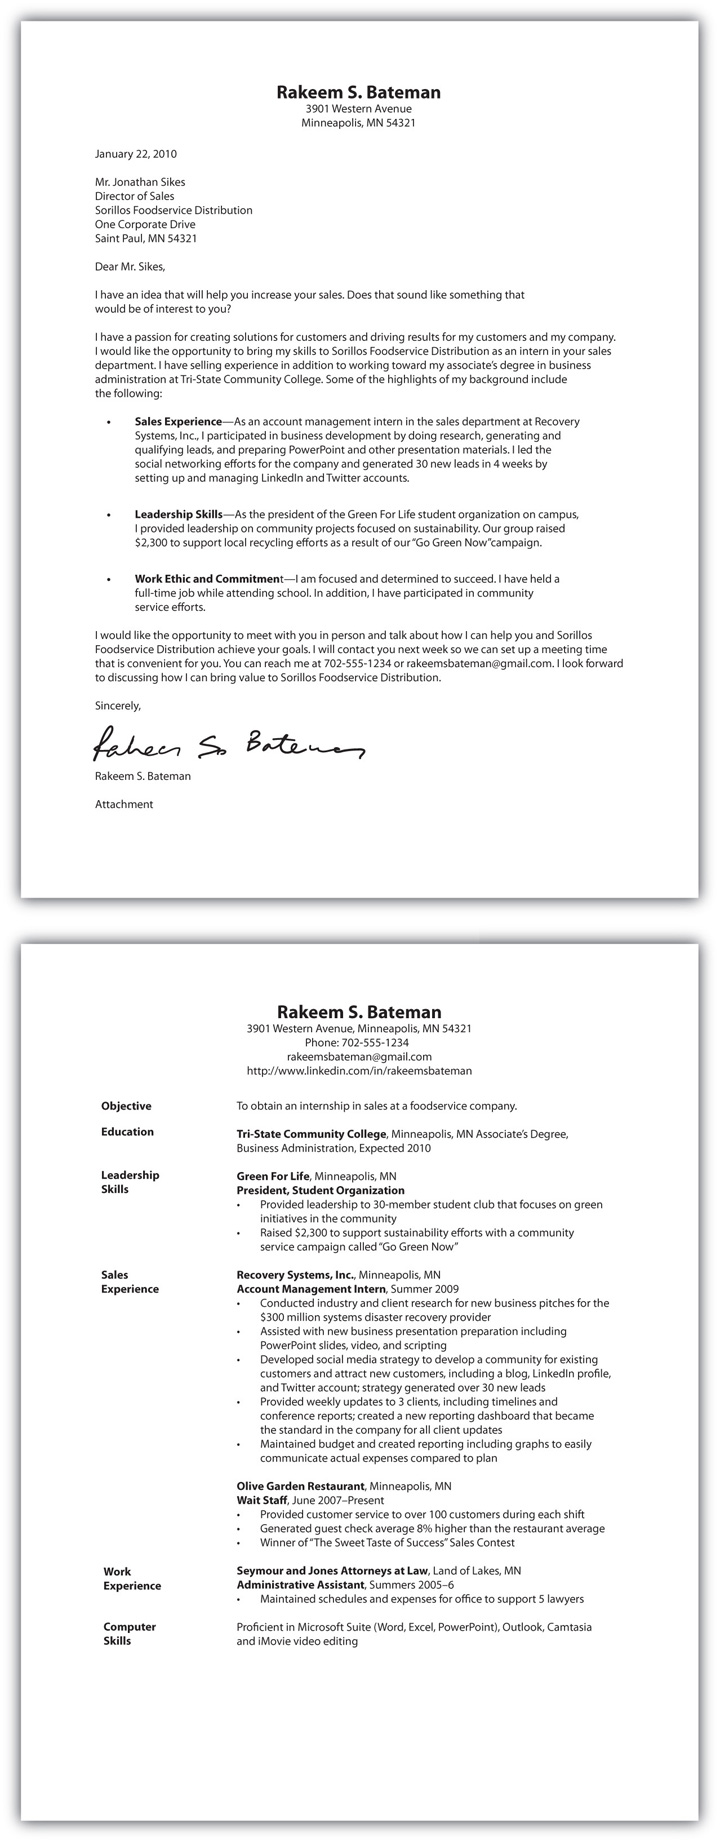 Cover Letter And Resume One File Online Writing Lab